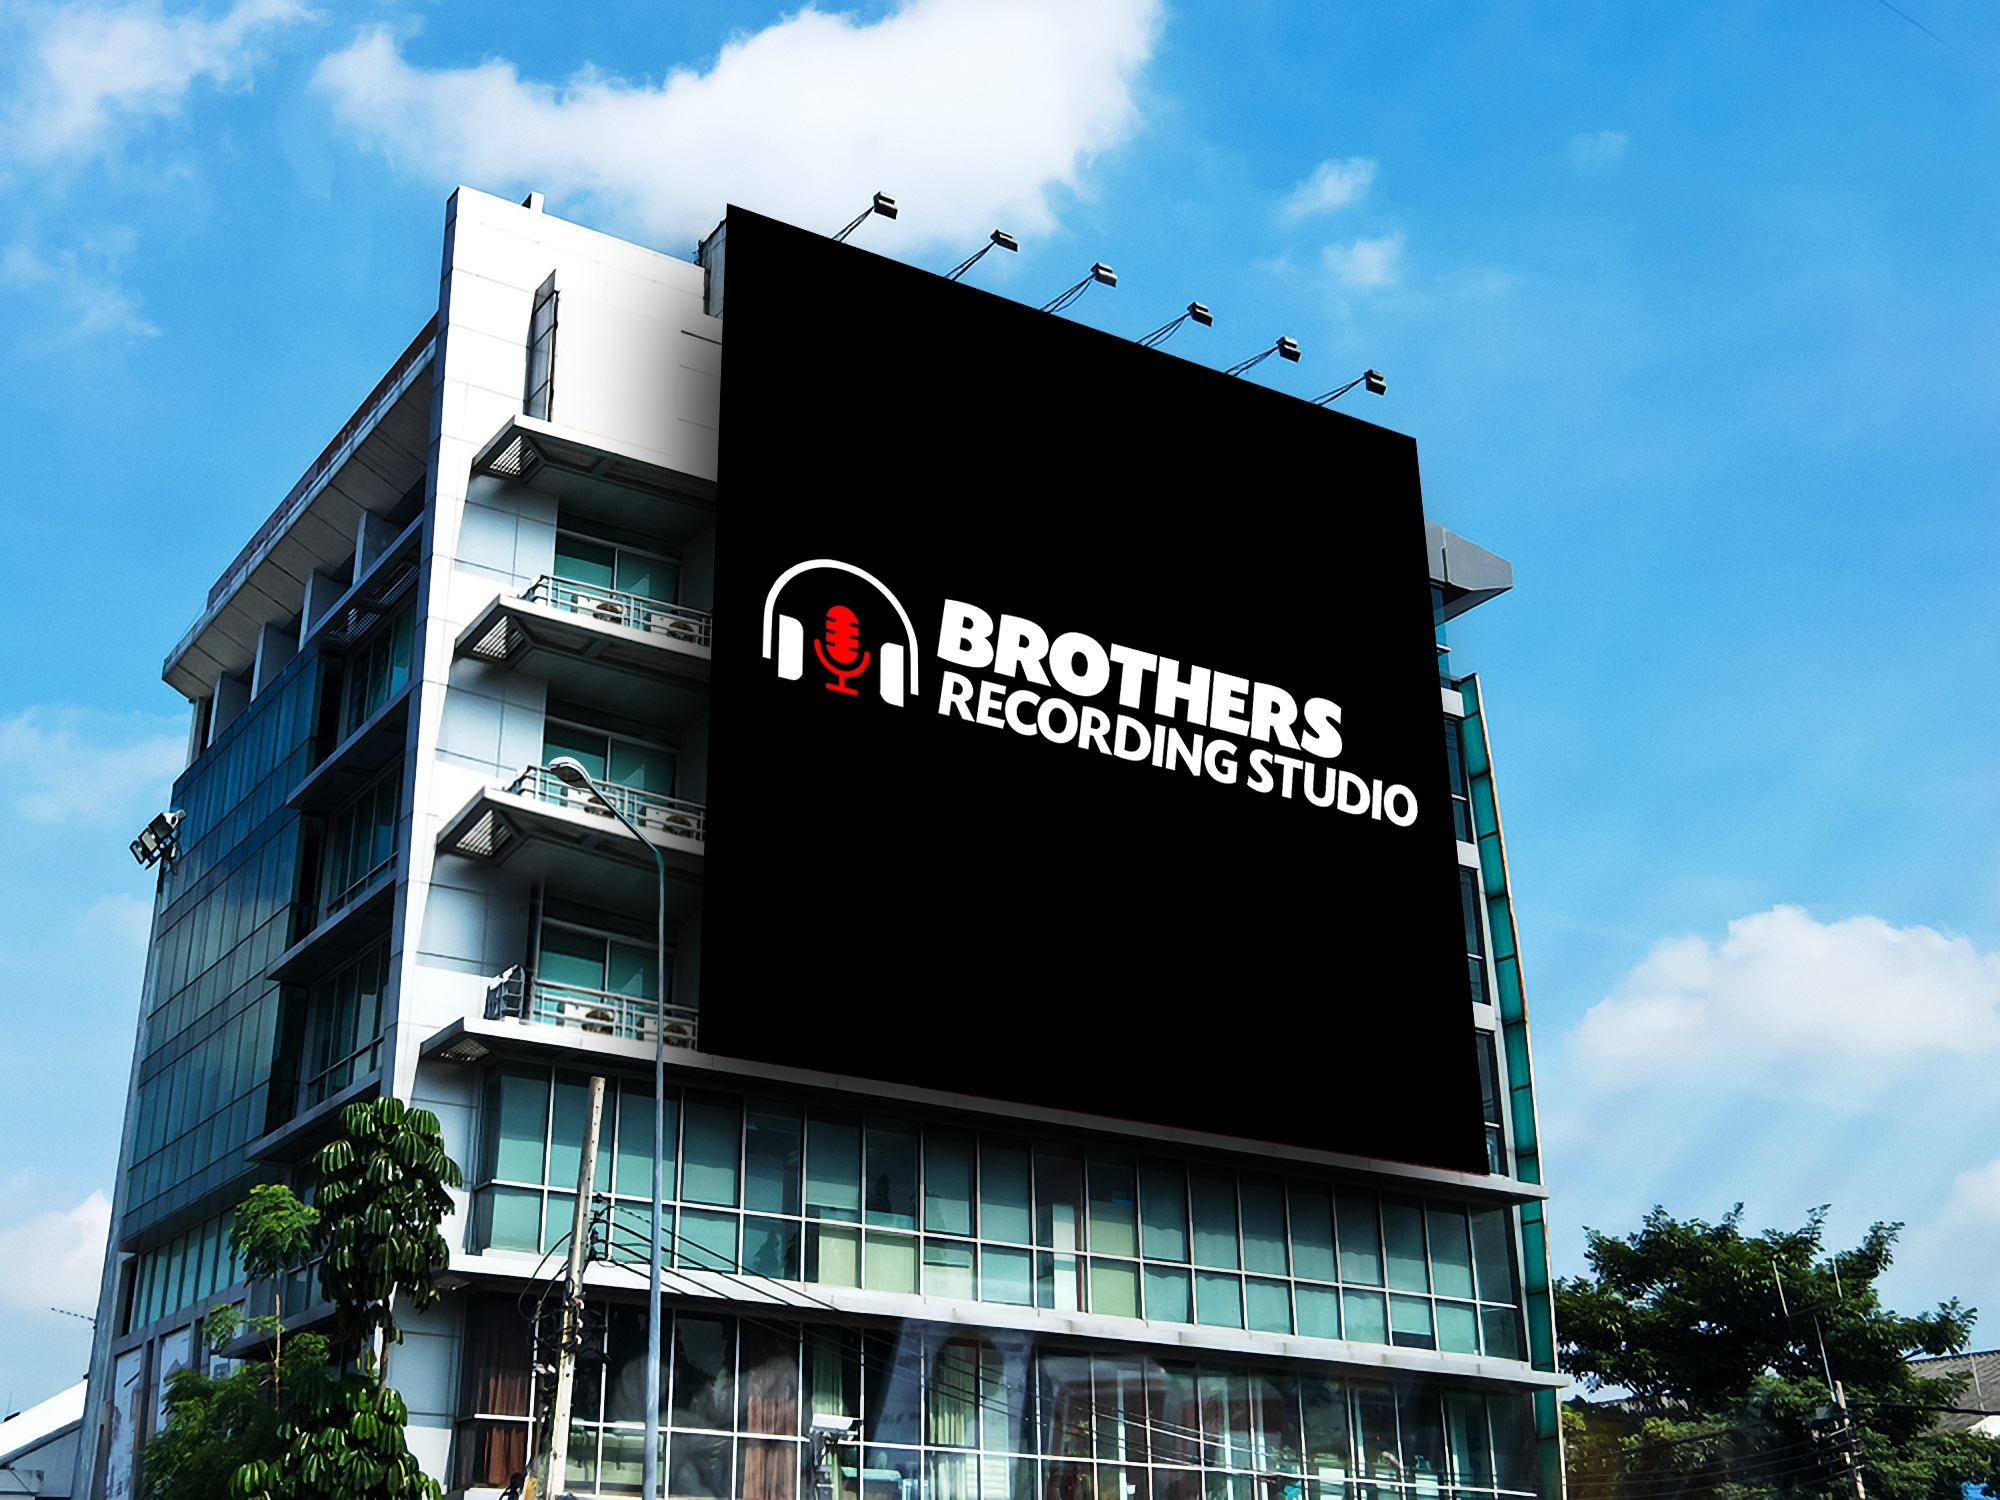 Brothers recording studio